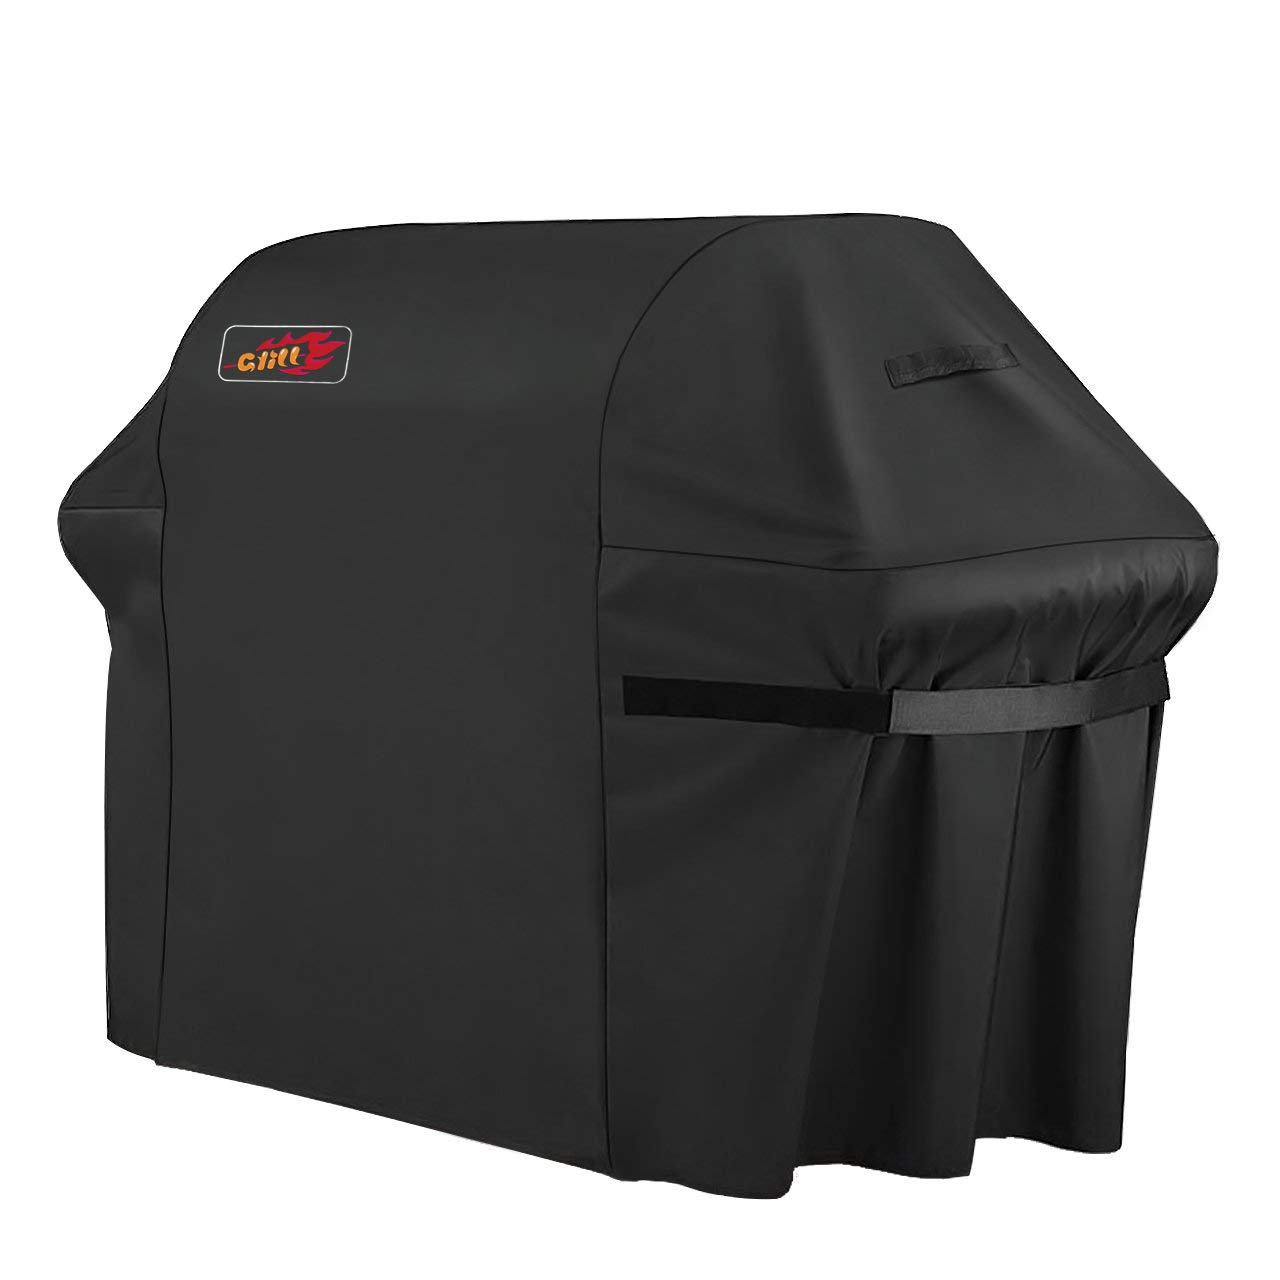 VicTsing Grill Cover, 72-Inch Waterproof BBQ Cover, 600D Heavy Duty Gas Grill Cover for Weber, Brinkmann, Char Broil, Holland and Jenn Air (Dust & Water Resistant, Weather Resistant, Rip Resistant)